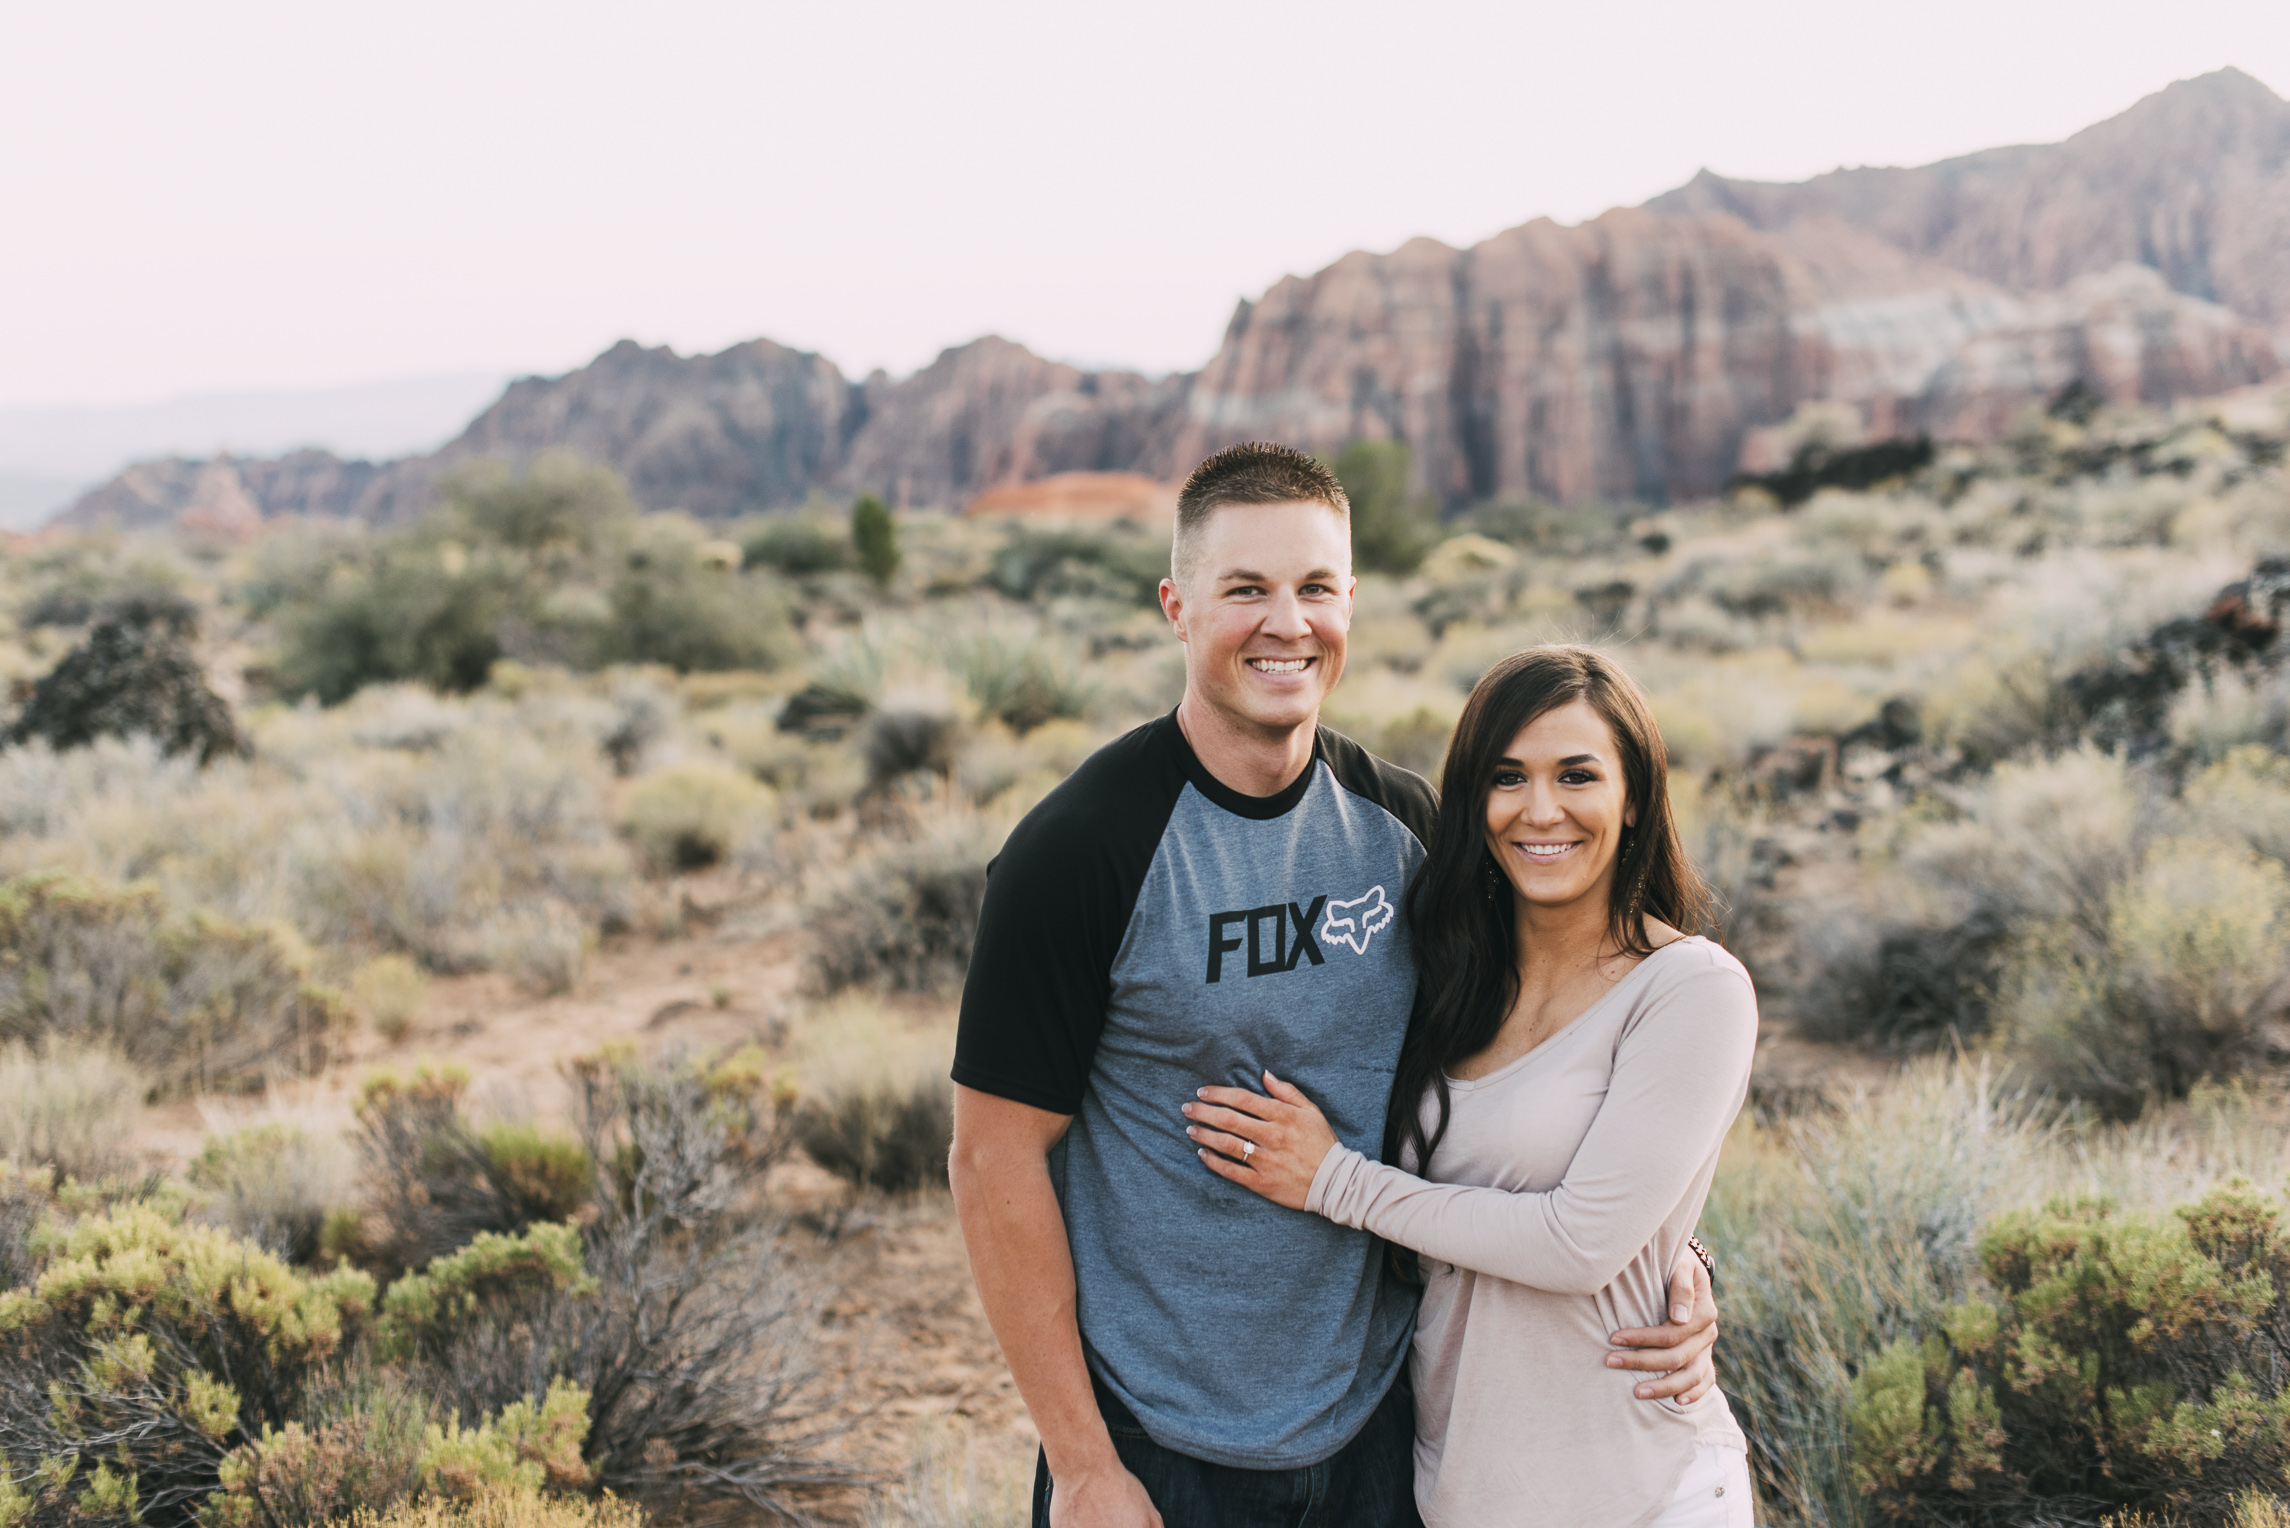 050416KELSEY & RUSTIN ENGAGEMENTS - ST. GEORGE LAS VEGAS PHOTOGRAPHER - DEBI RAE PHOTOGRAPHY-56.jpg